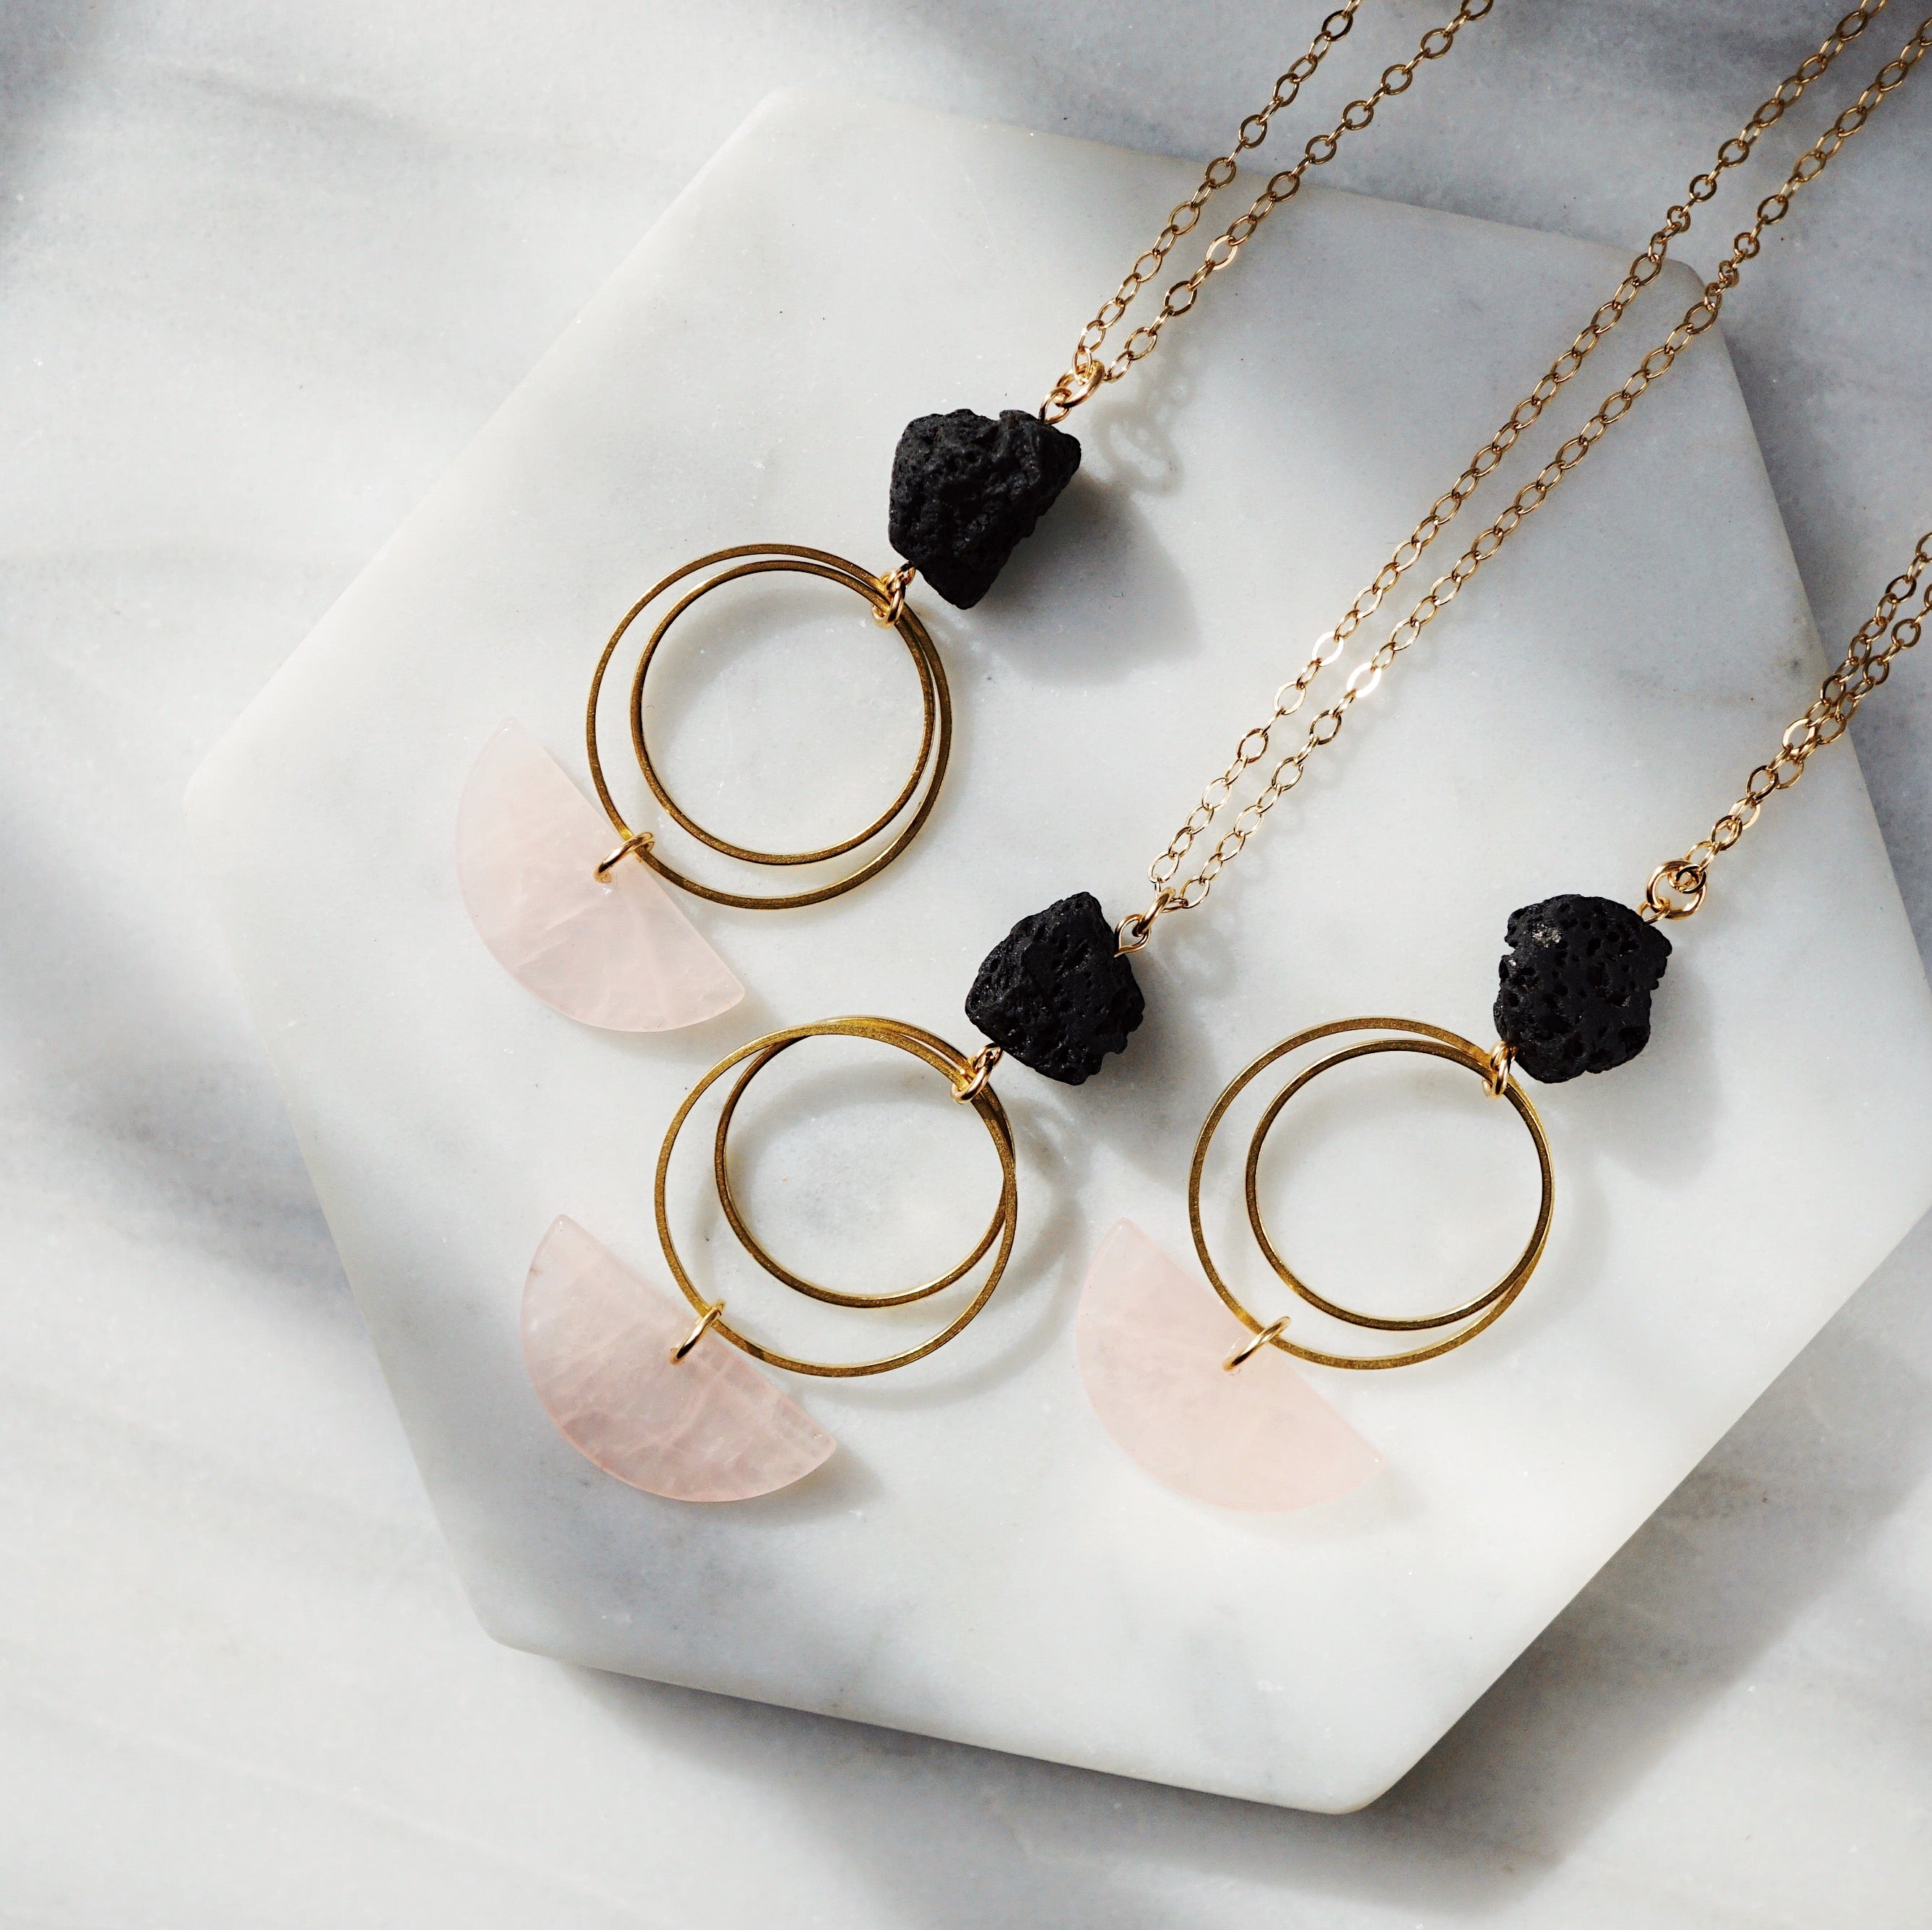 HALF MOON COLLECTION ◖Rose Quartz Aromatherapy Lava Necklace [G] - Lava Essential Oils